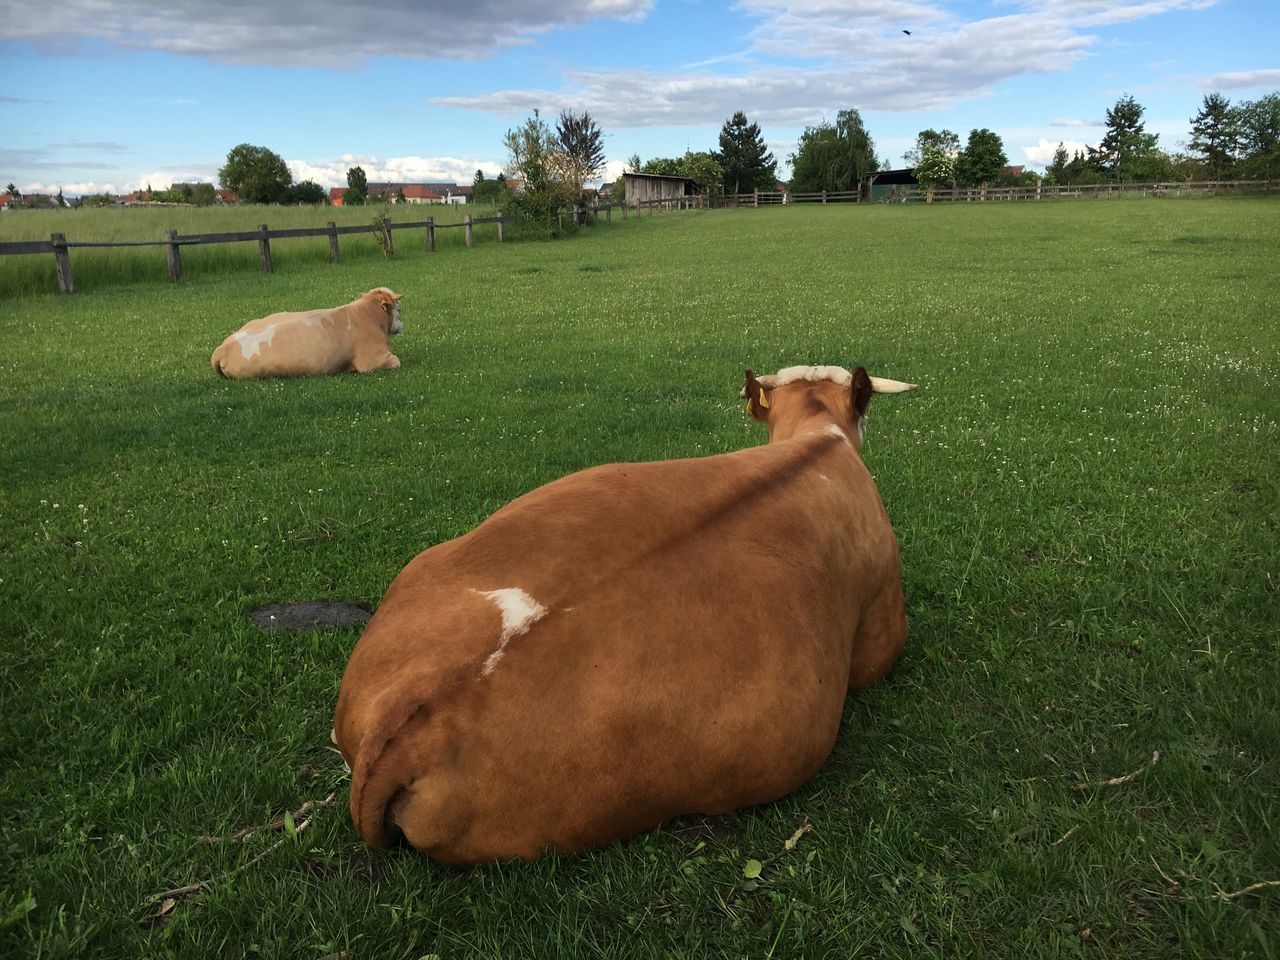 Grass Field Domestic Animals Mammal Livestock Green Color Animal Themes Cattle Cow Landscape Lying Down Nature Sky No People Day Tree Outdoors Cows Cow Cows In A Field Rind